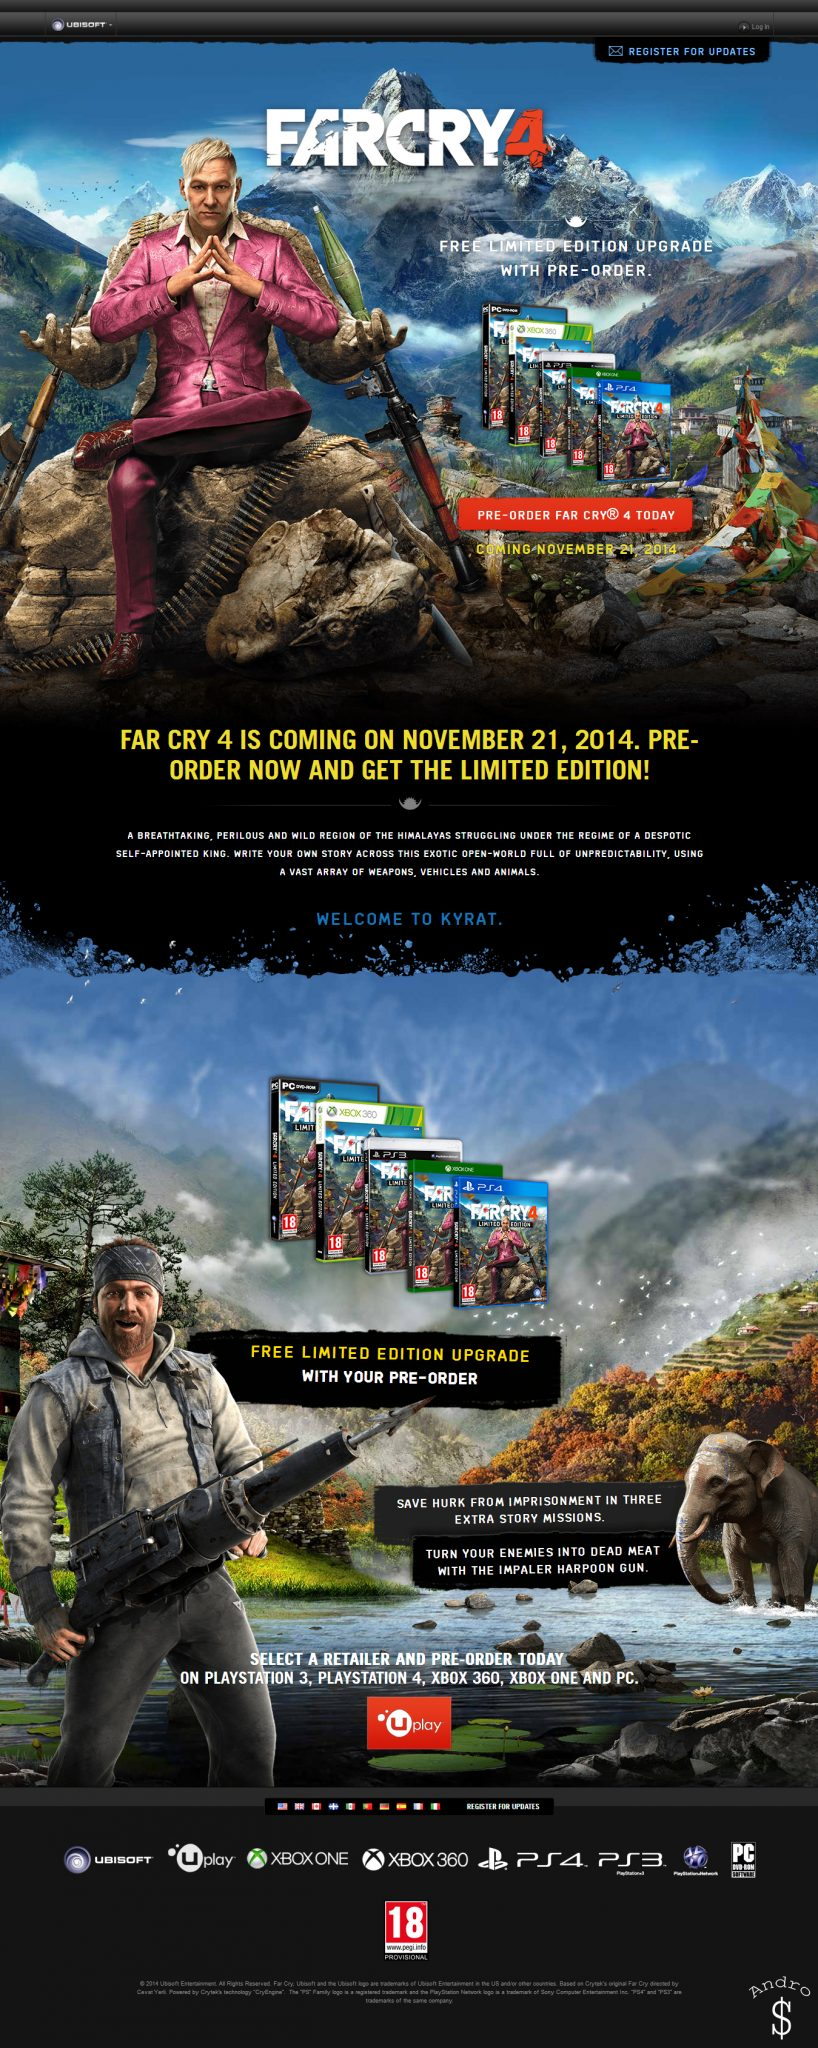 Far Cry 4 Official Website